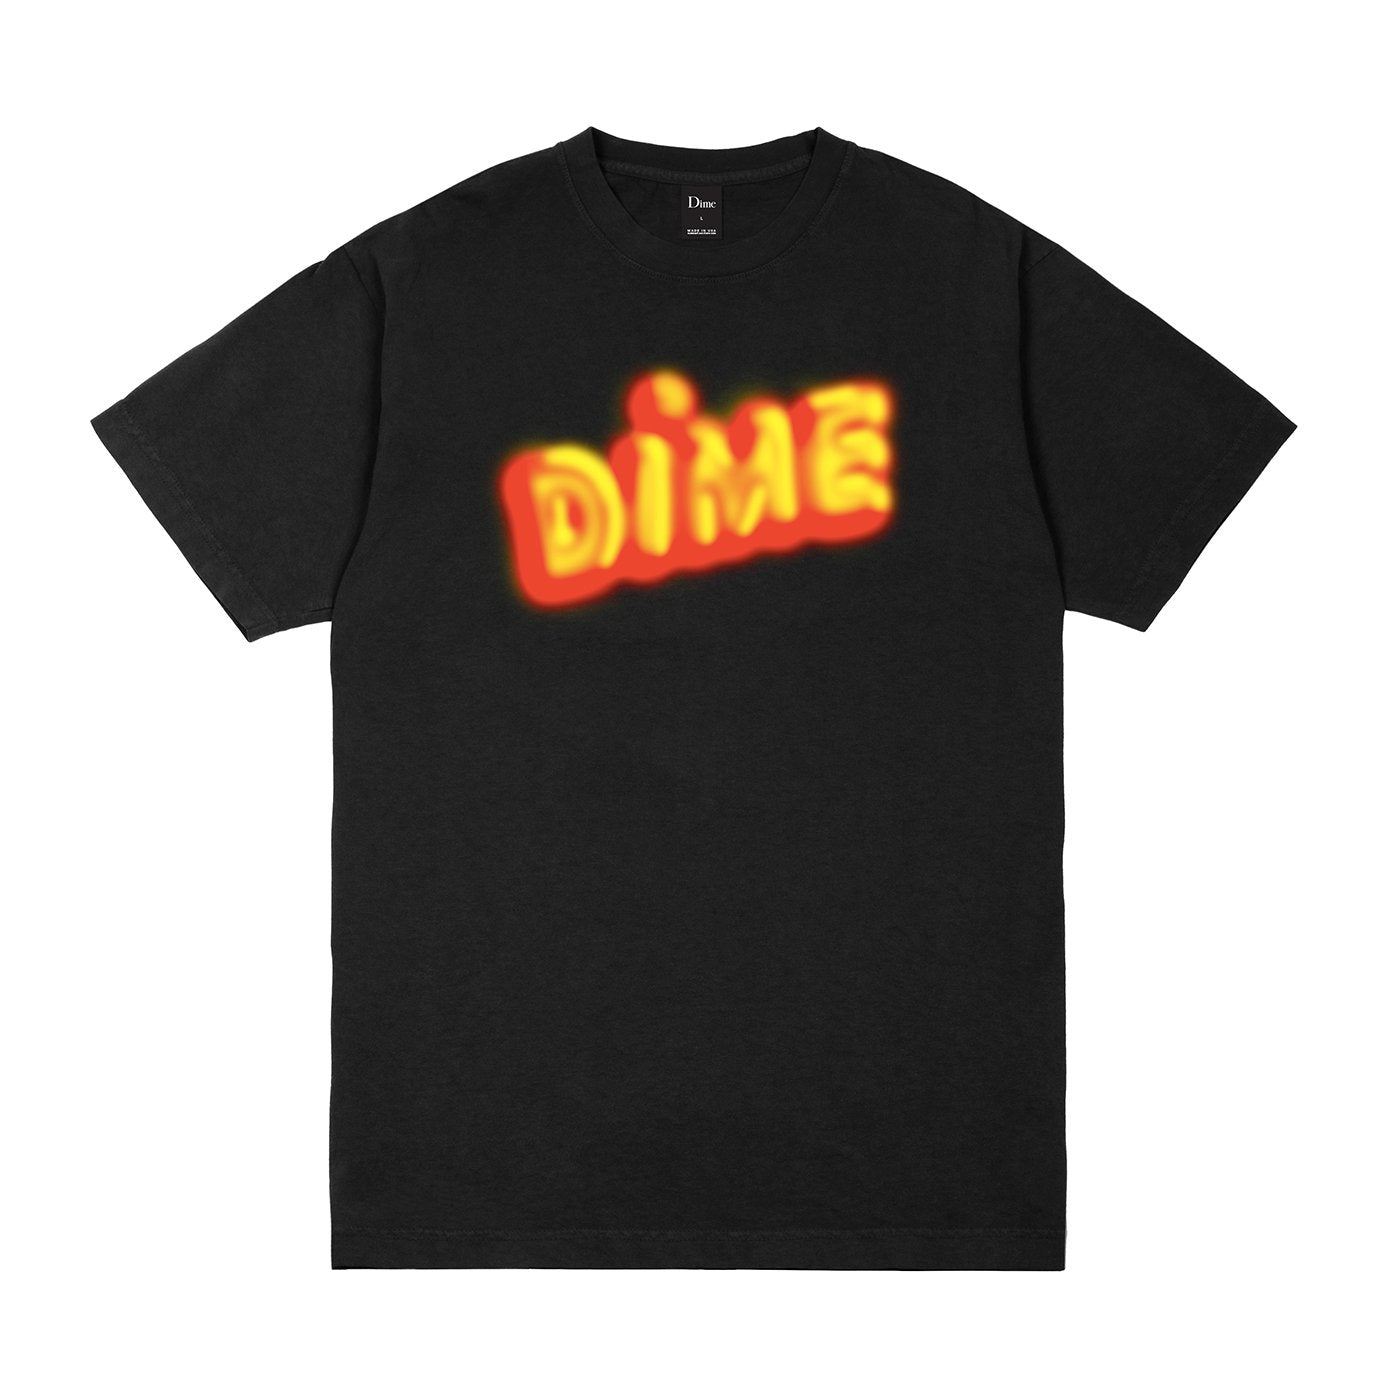 Dime Dizzy Tee Product Photo #1